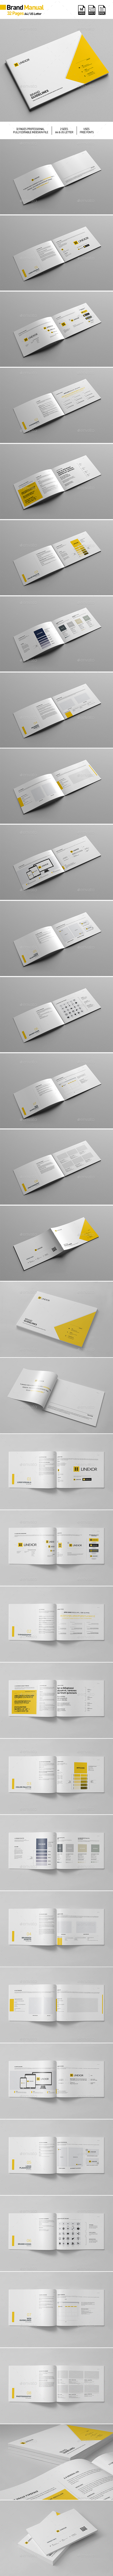 Brand Manual 32 Pages A4 / US Letter - Corporate Brochures